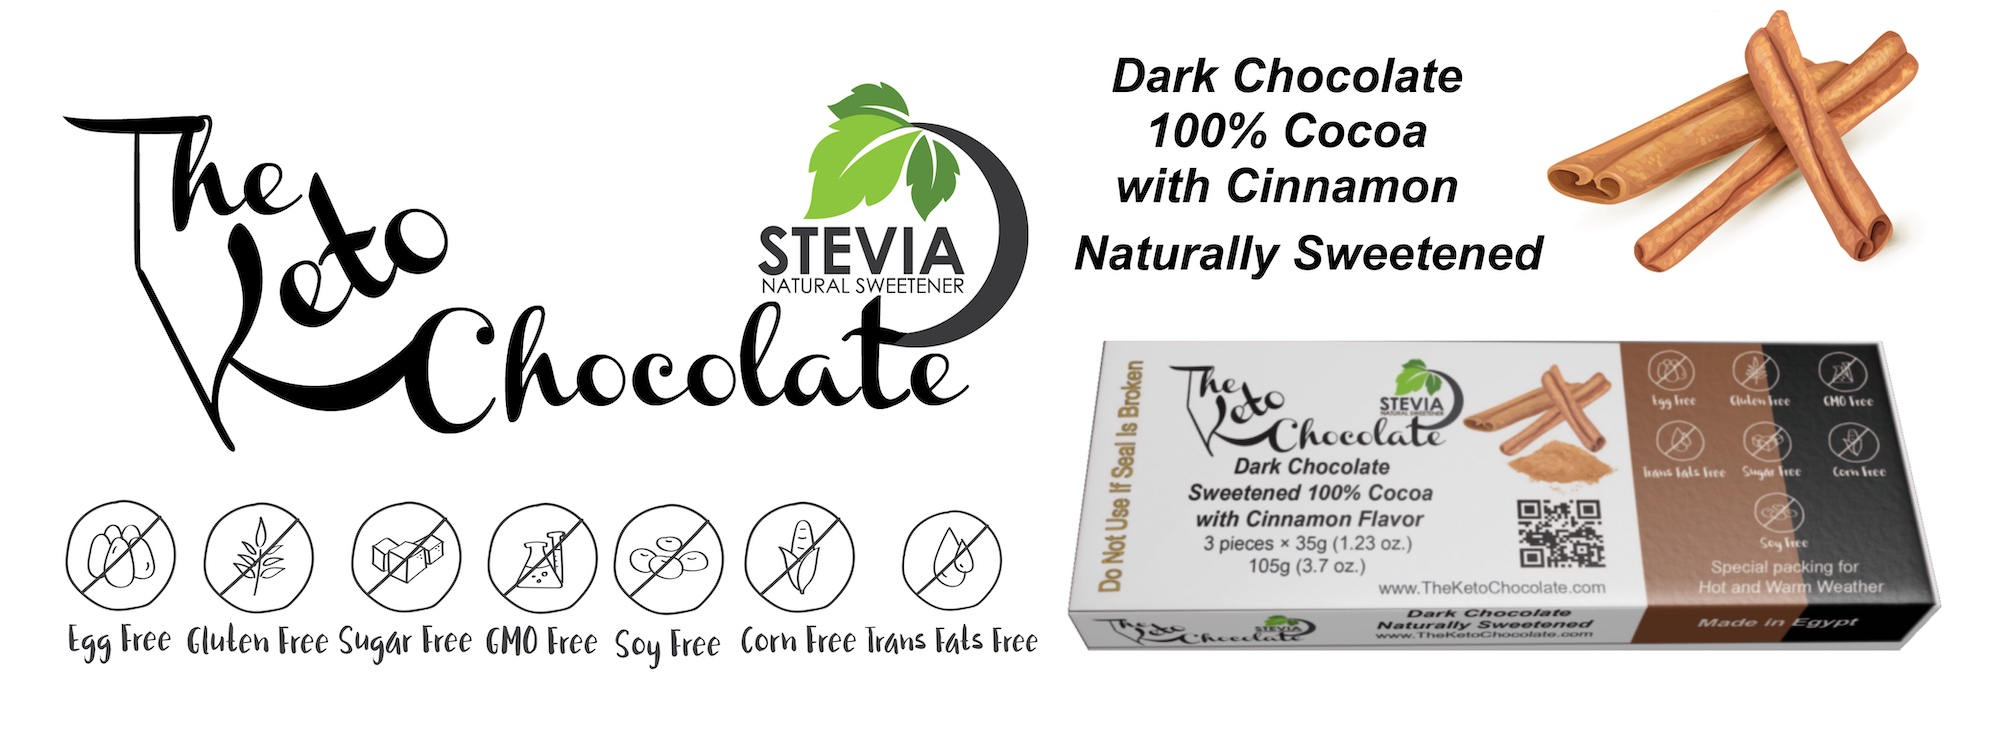 Sweetened Dark Chocolate 100% Cocoa with Cinnamon Flavoured